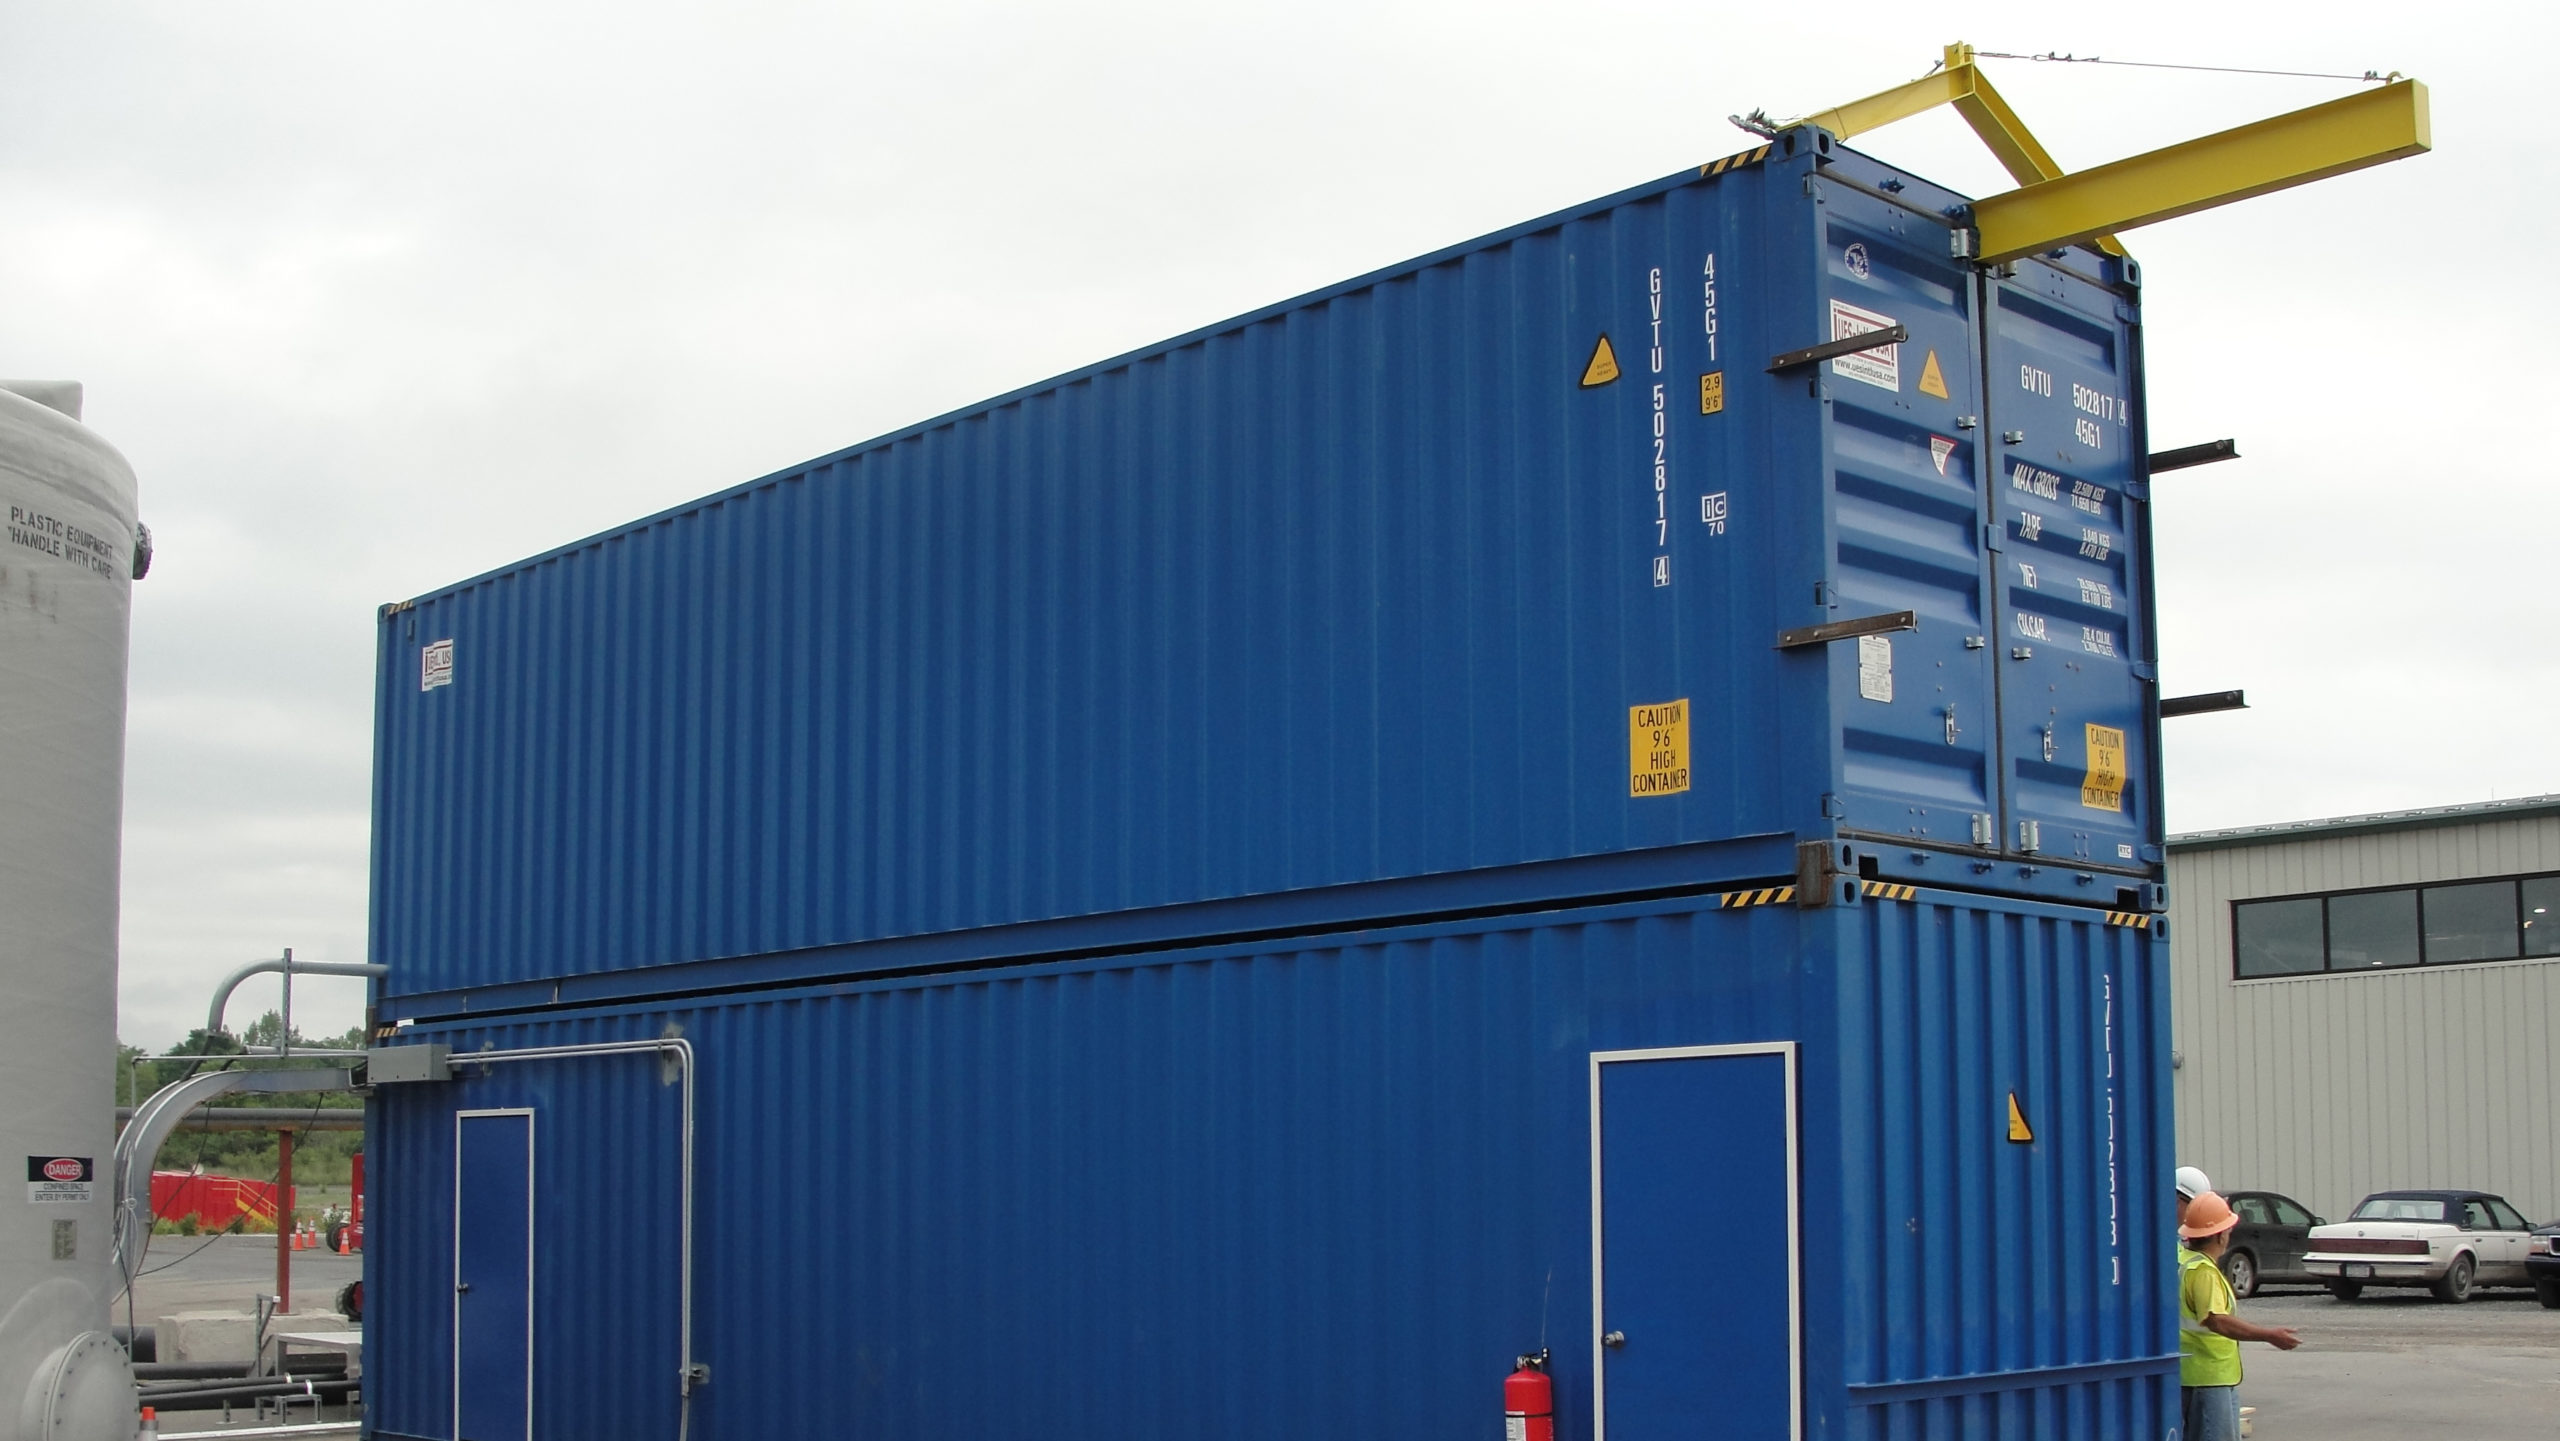 Two shipping containers stacked on top of each other and connected to house a dry polymer preparation system for a dredging project.